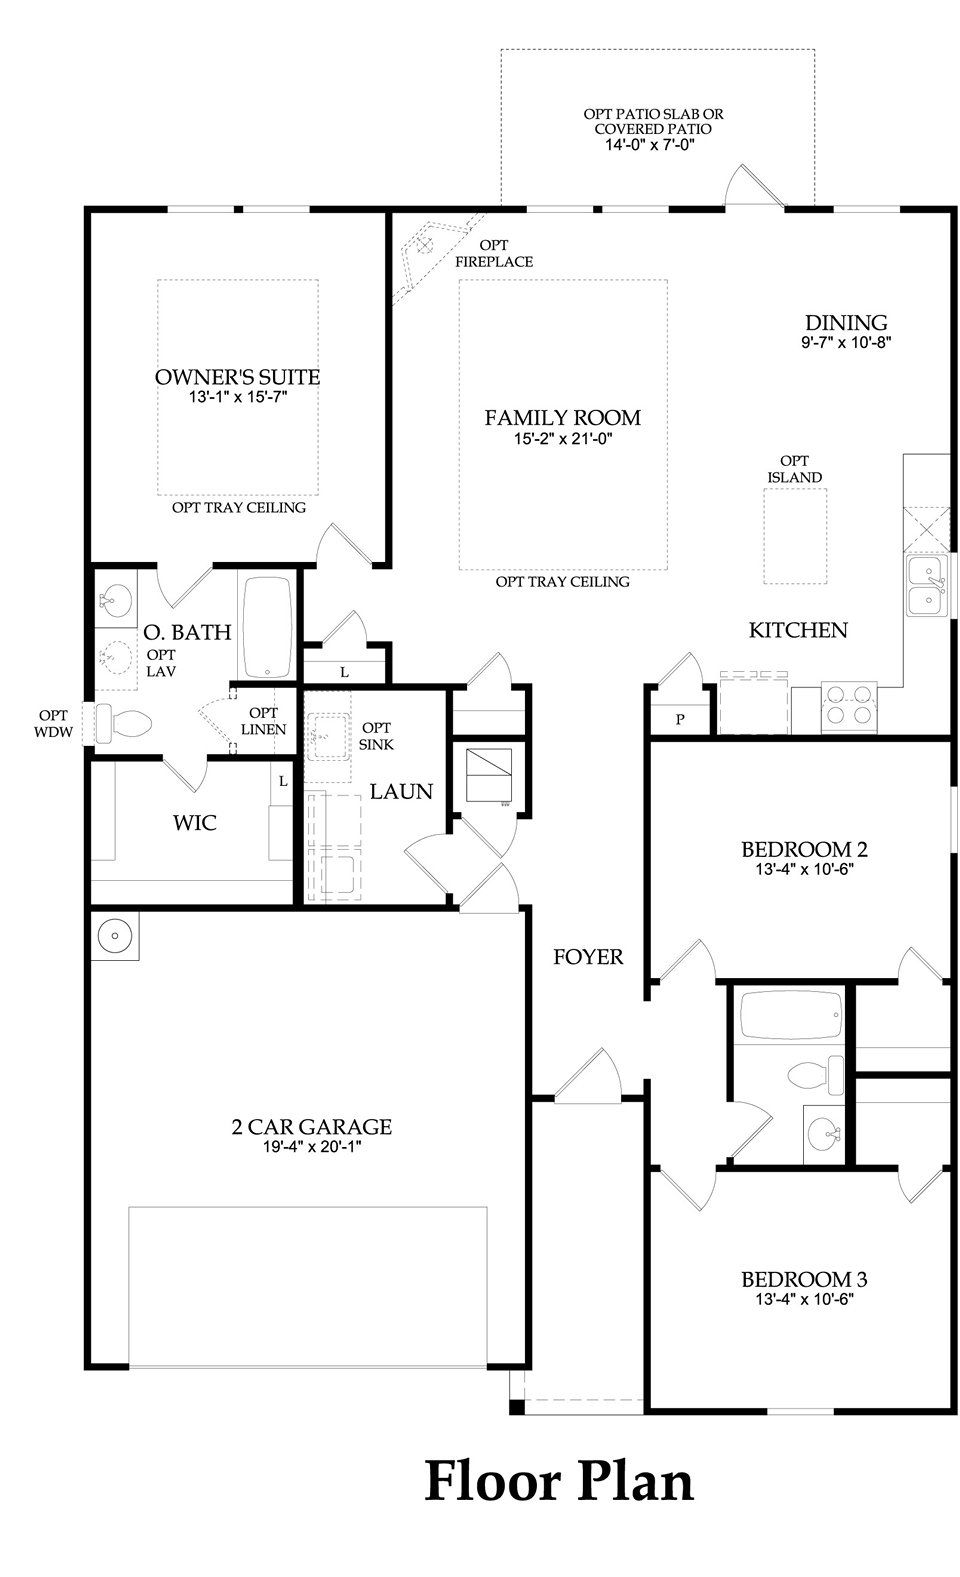 Old Centex Townhome Floor Plans on old floor plans find, old lennar floor plans, old pulte floor plans, old english floor plans for estates,